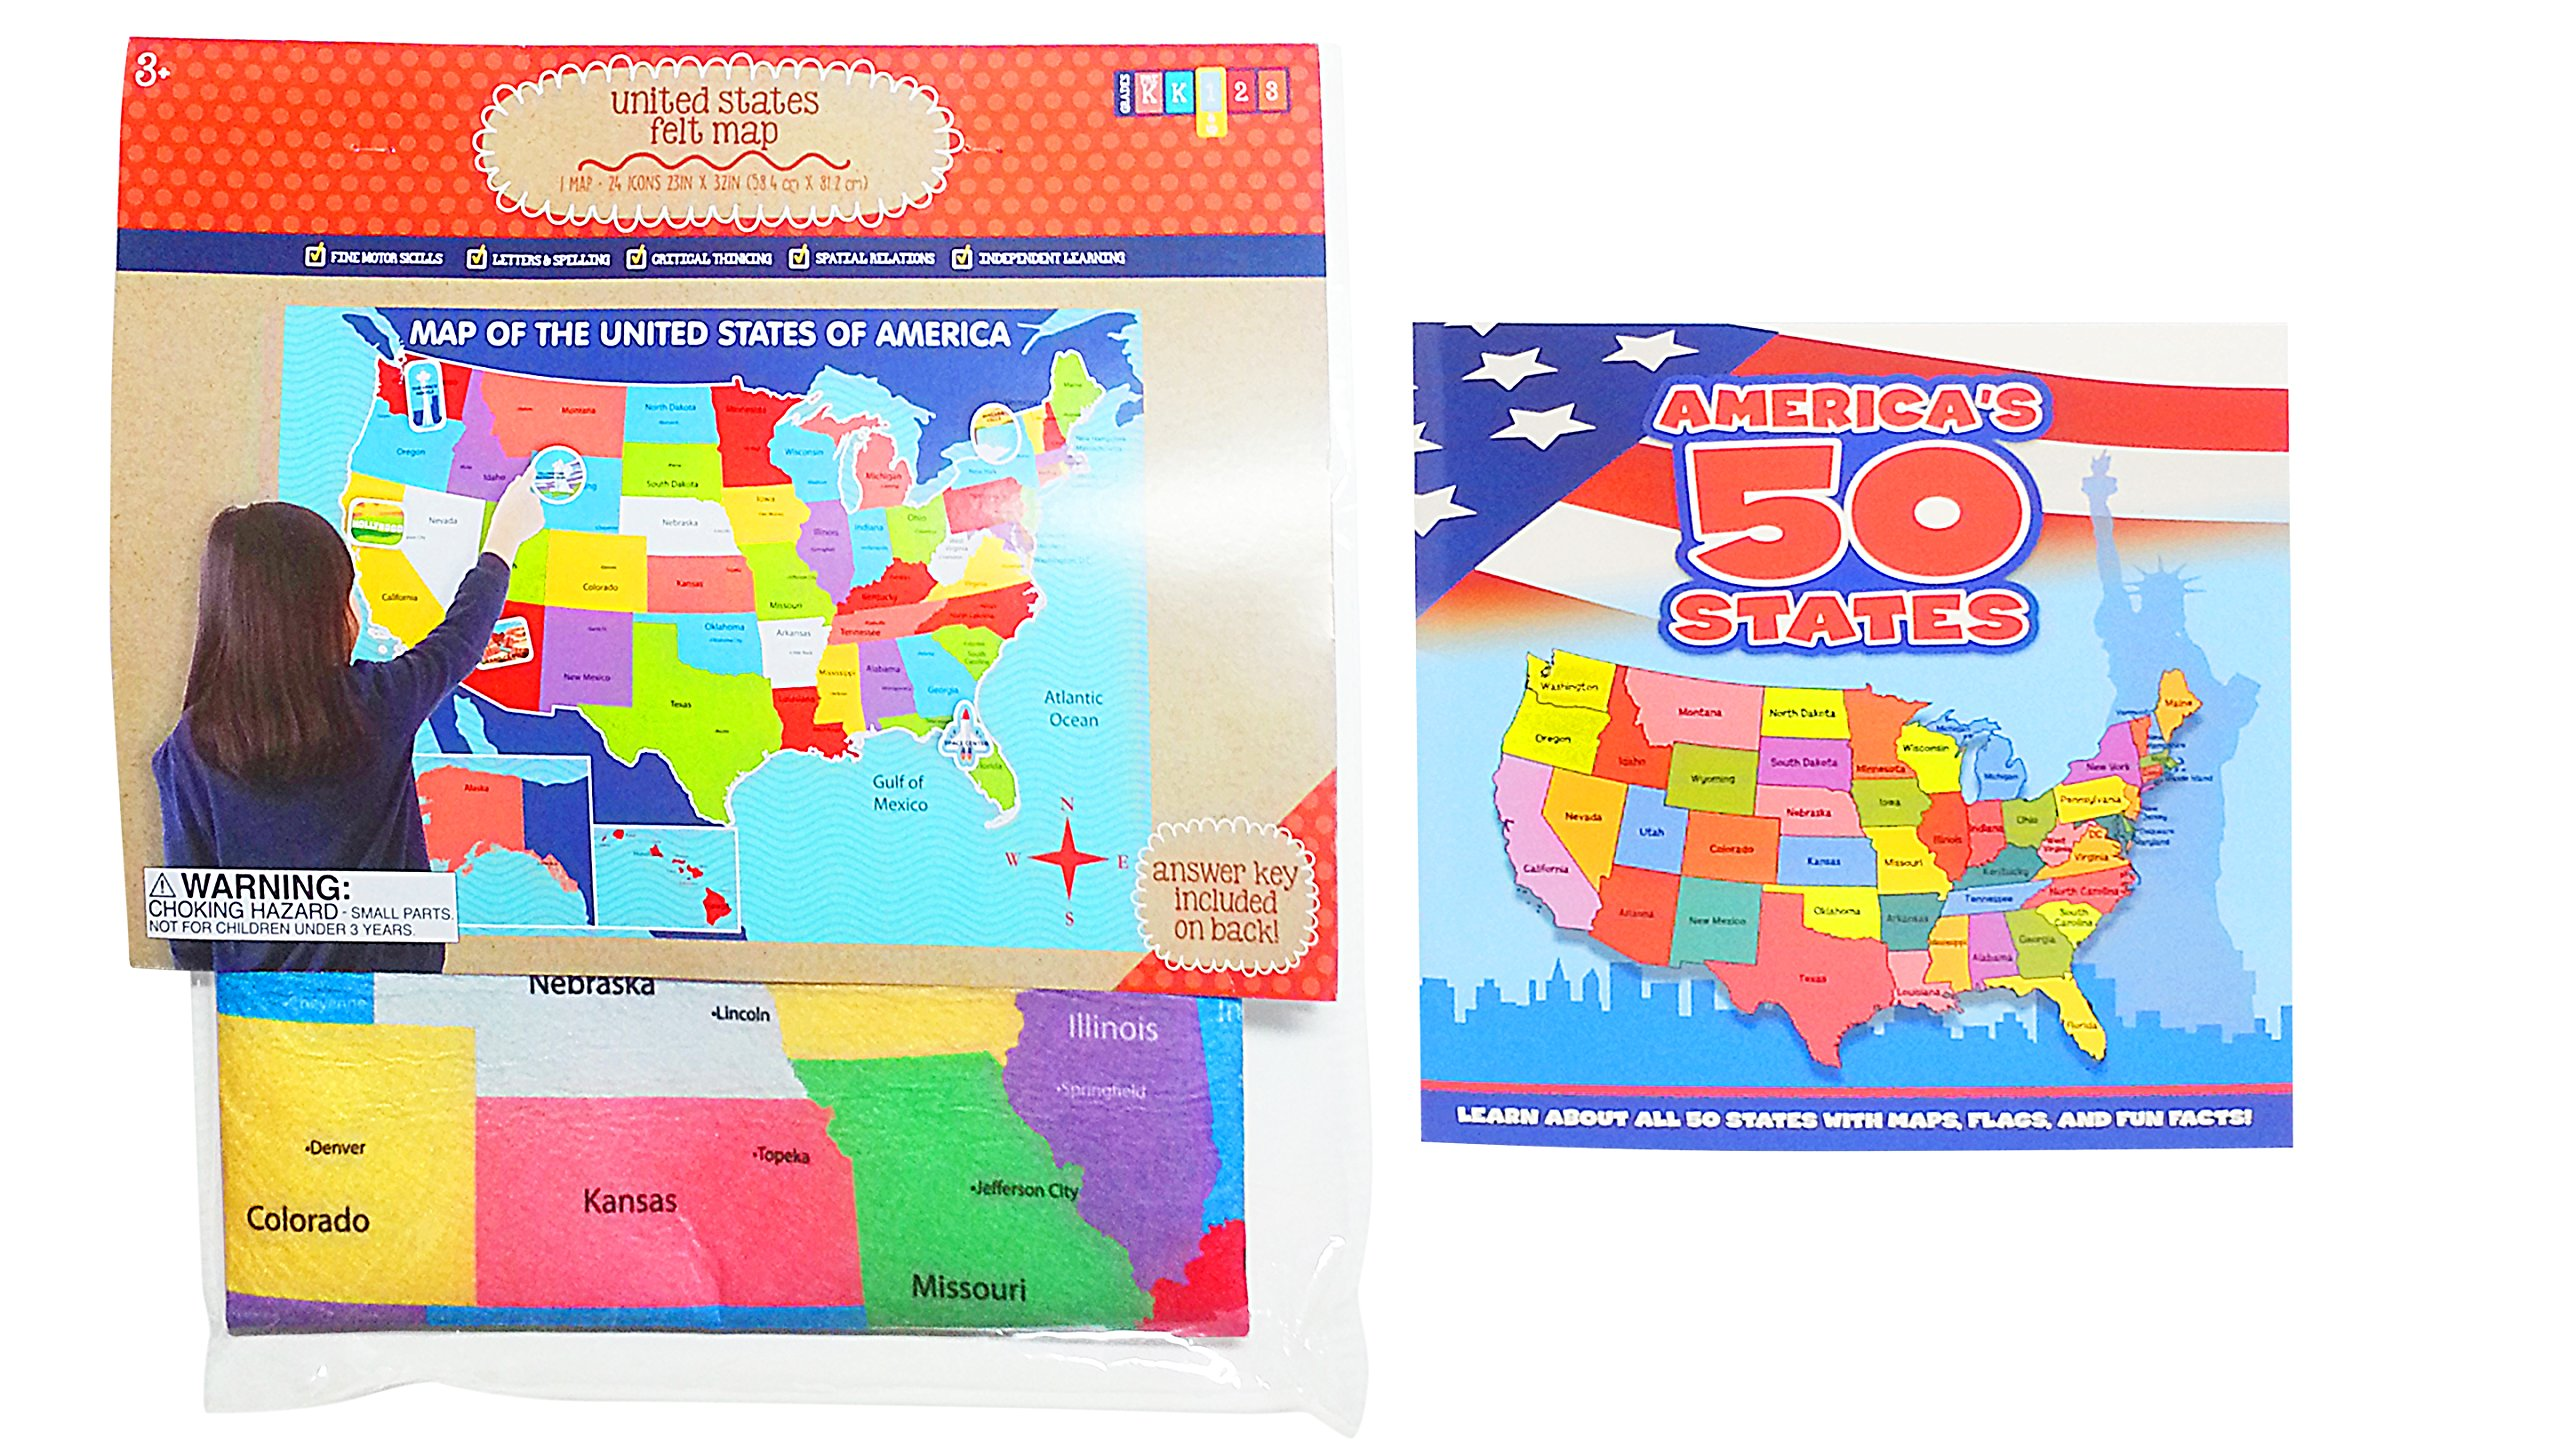 Combined United States Felt Educational Map and America's 50 States Book – Set of 2 Items